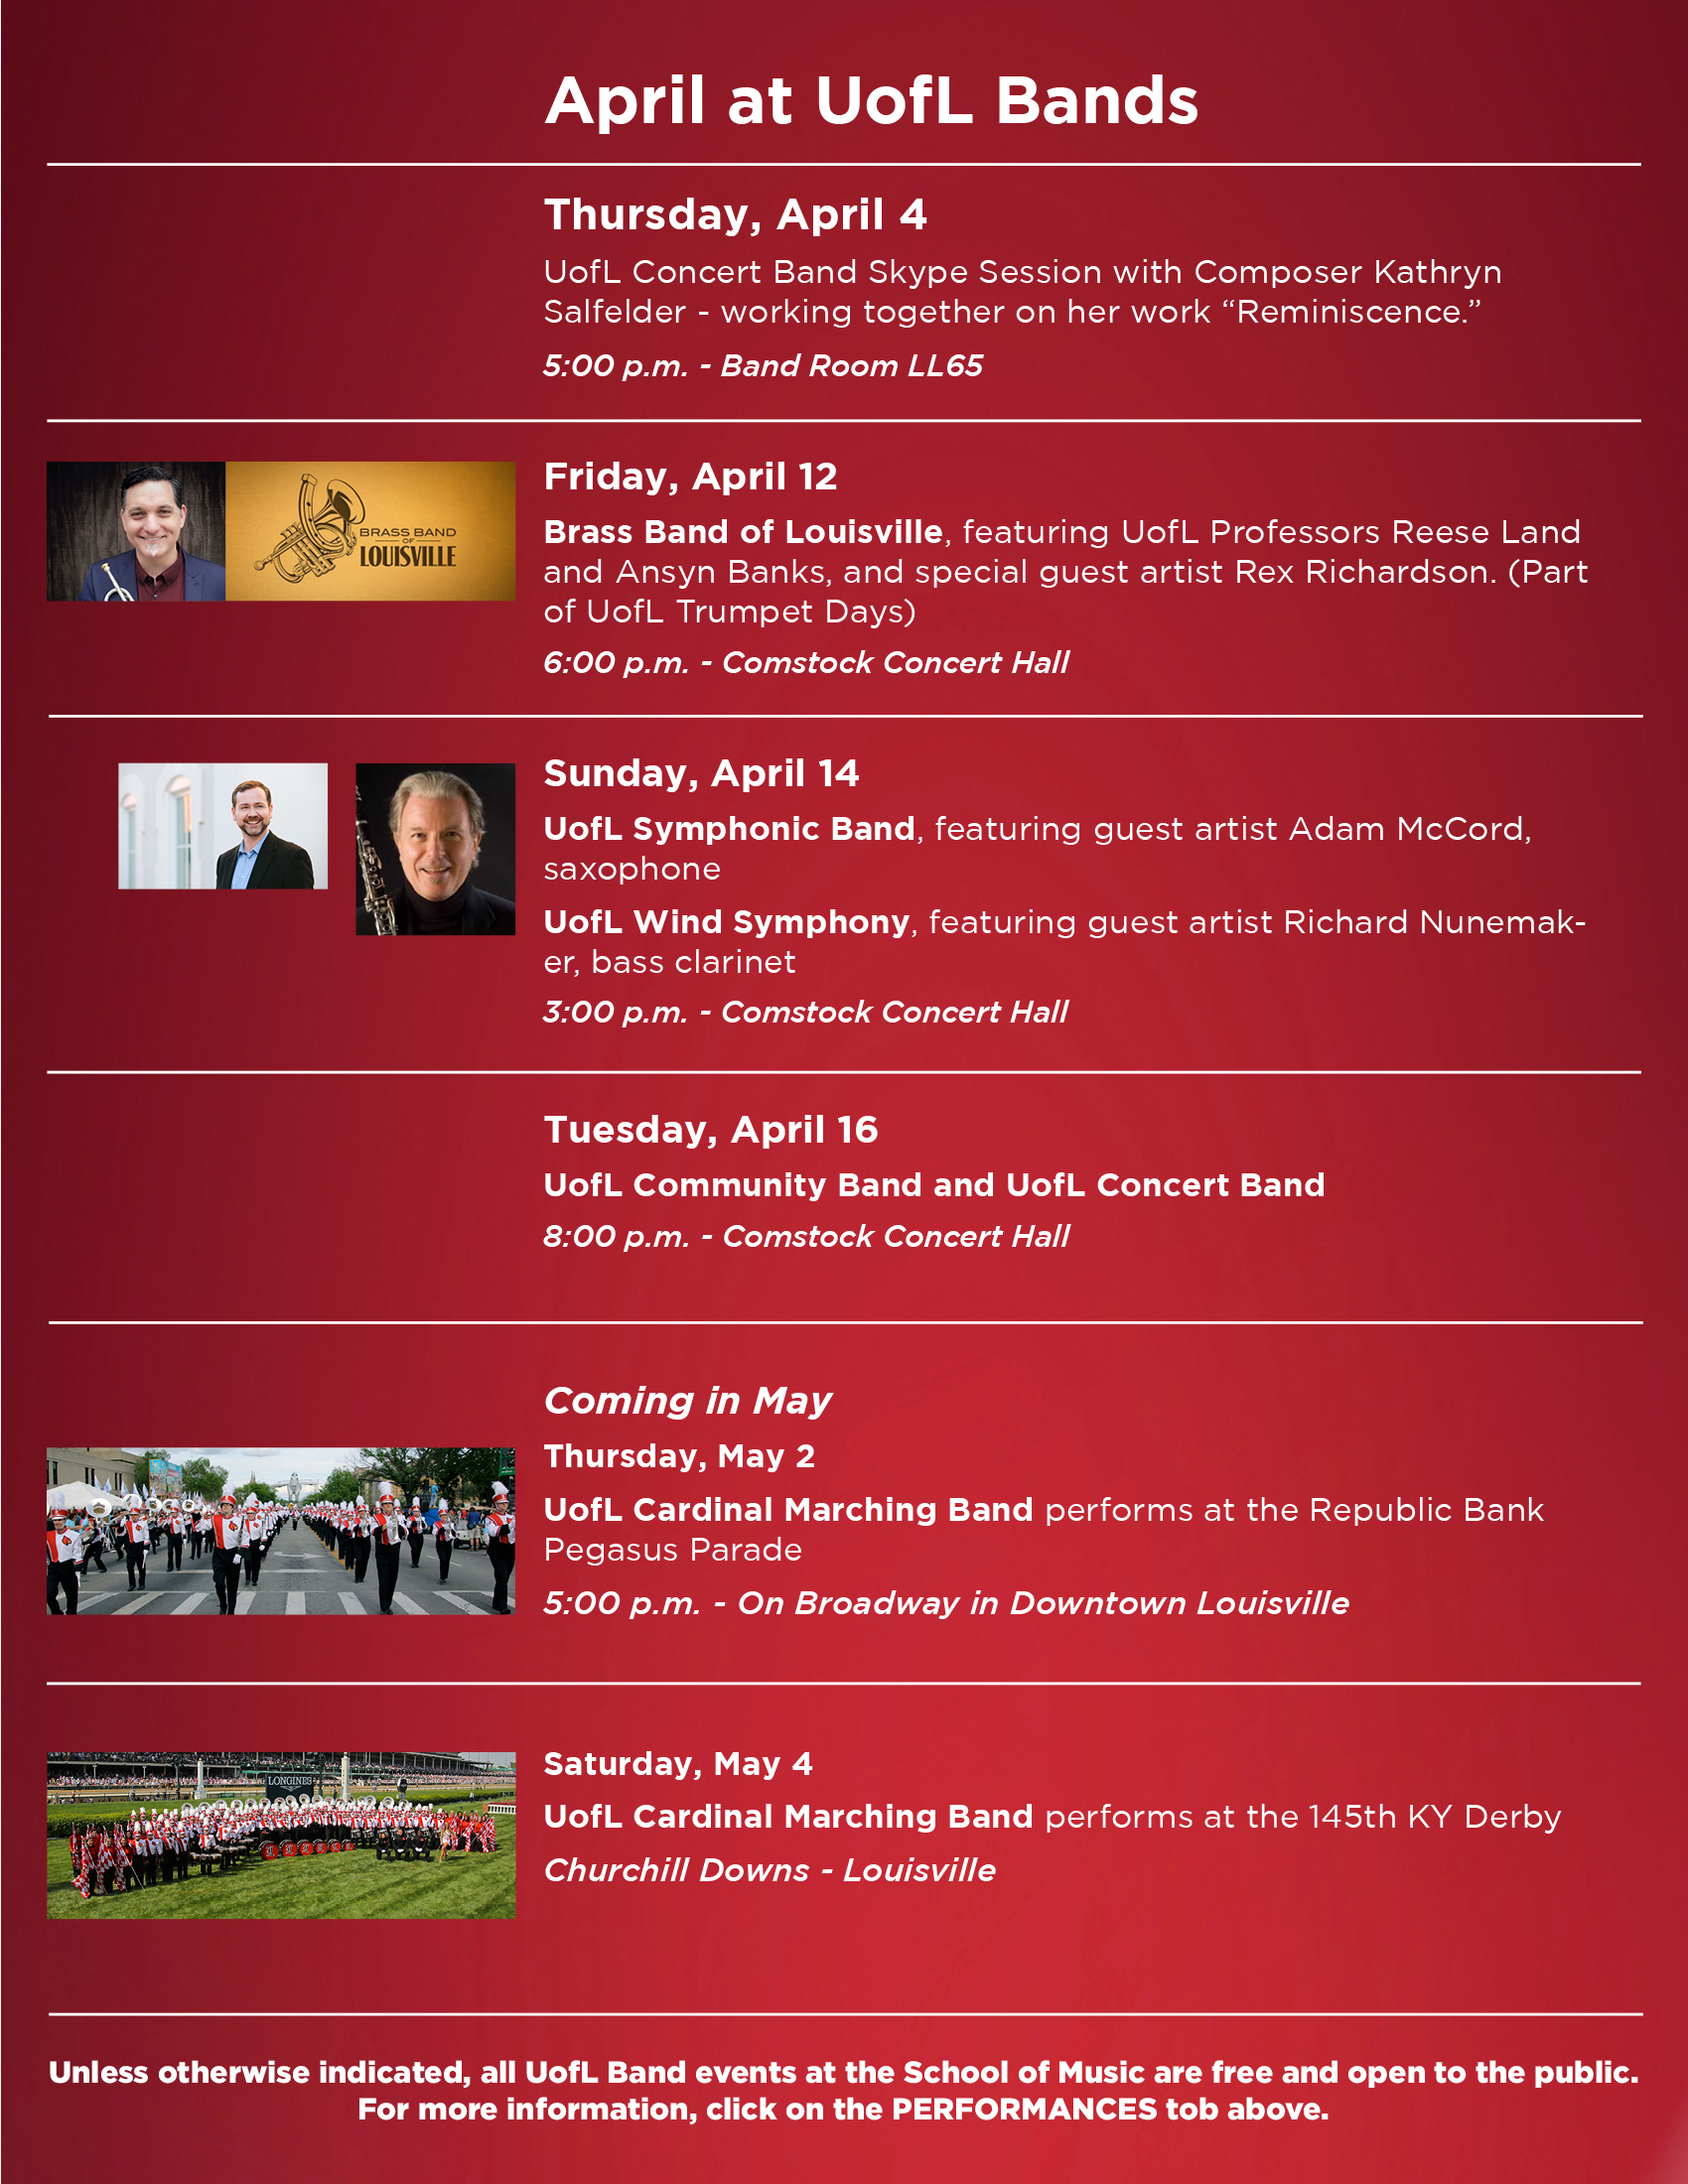 Uofl Calendar 2019 April at UofL Bands | UofL Bands